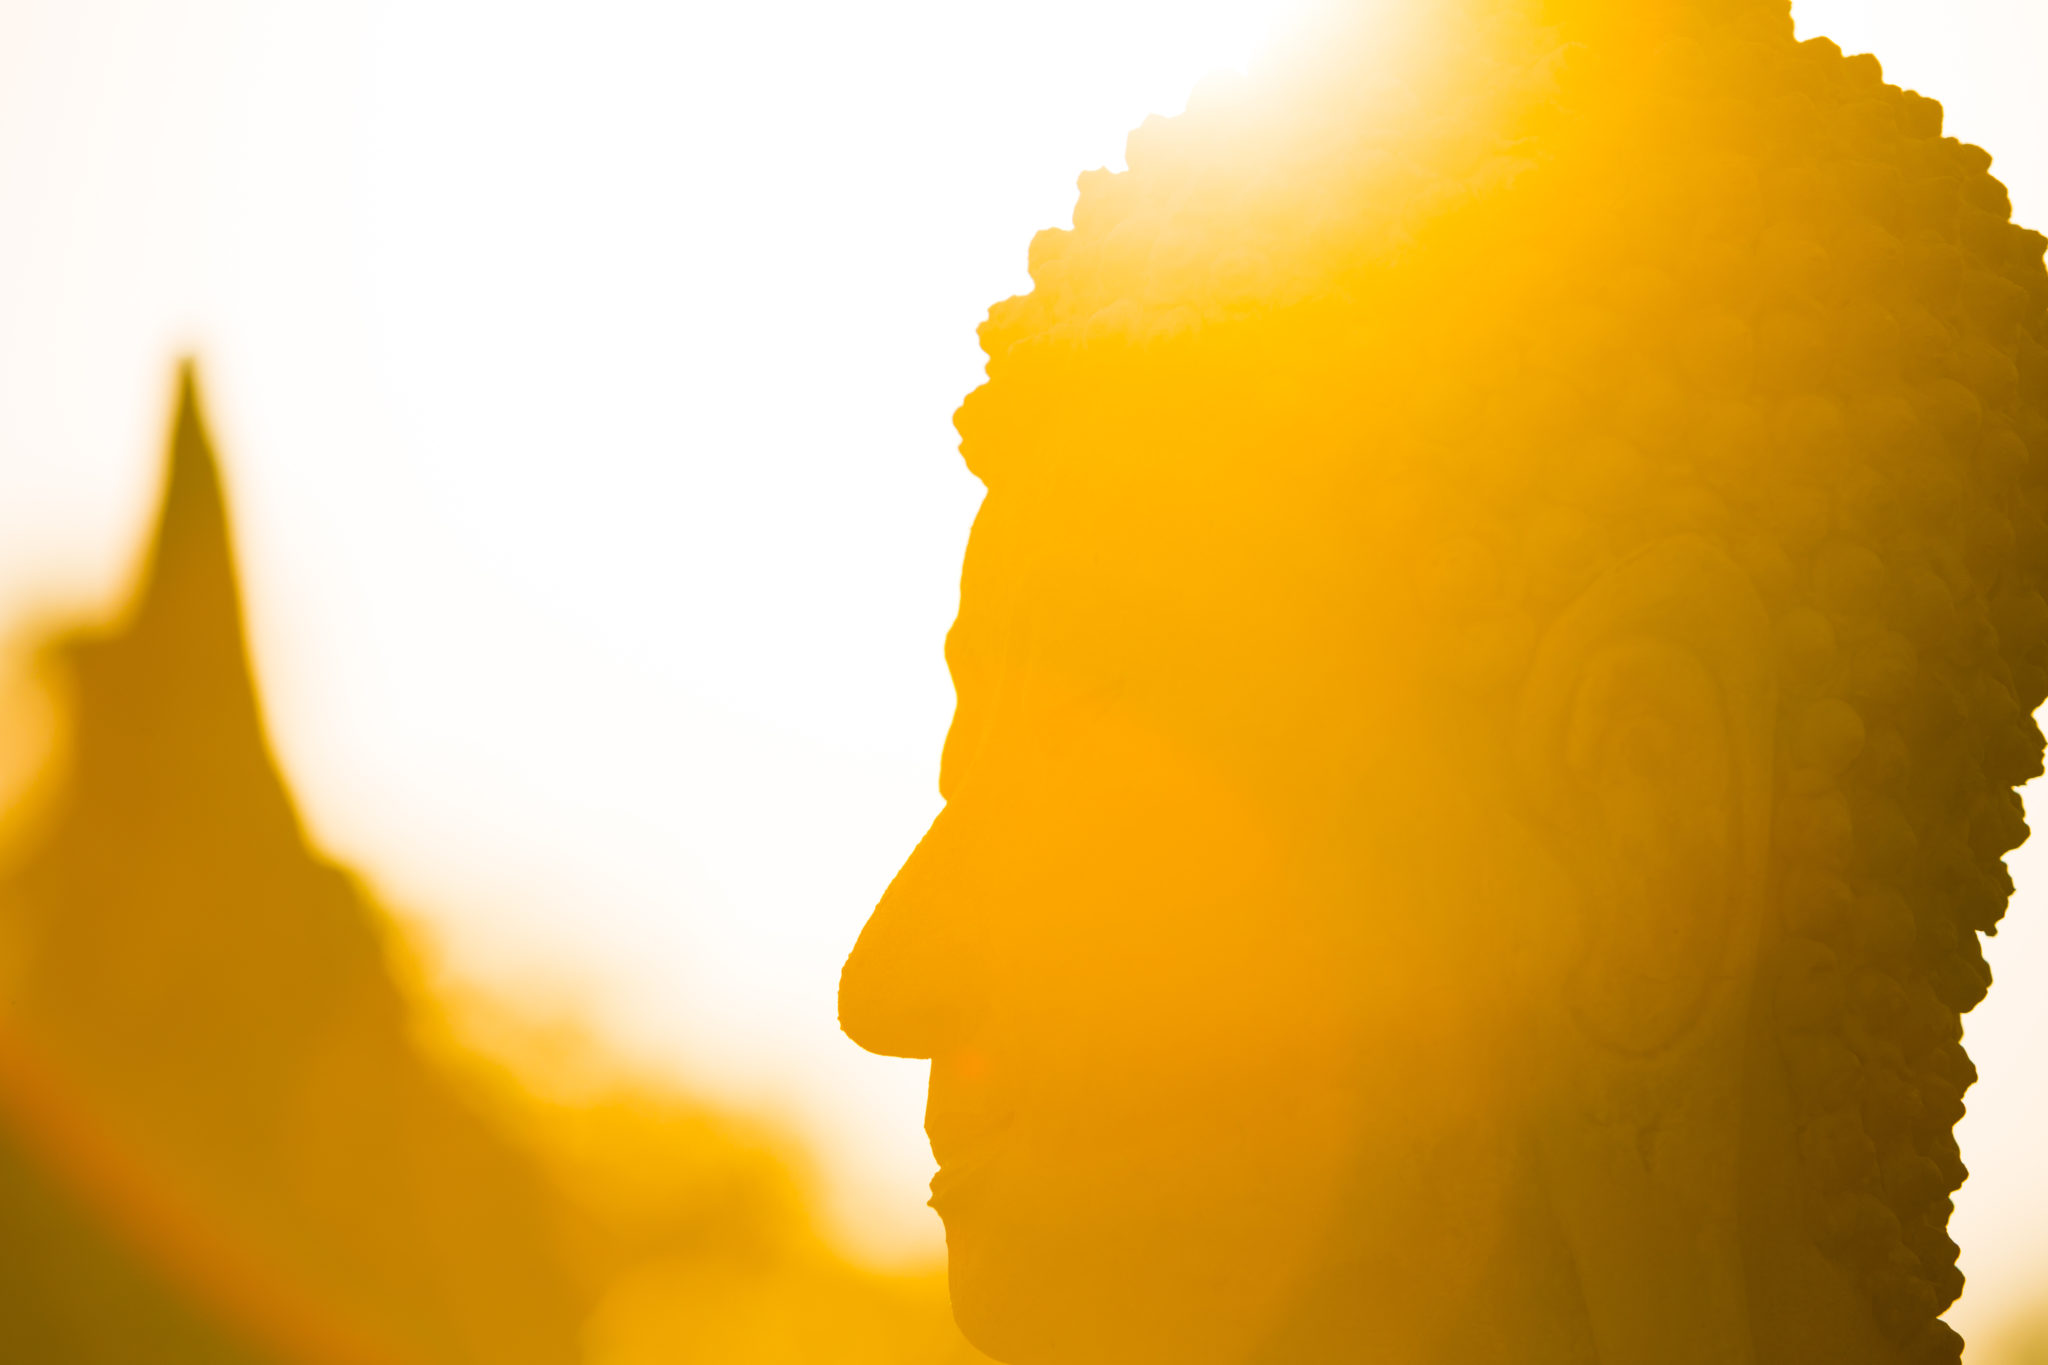 3 Mindfulness Practices for Overcoming Life's Greatest Challenges